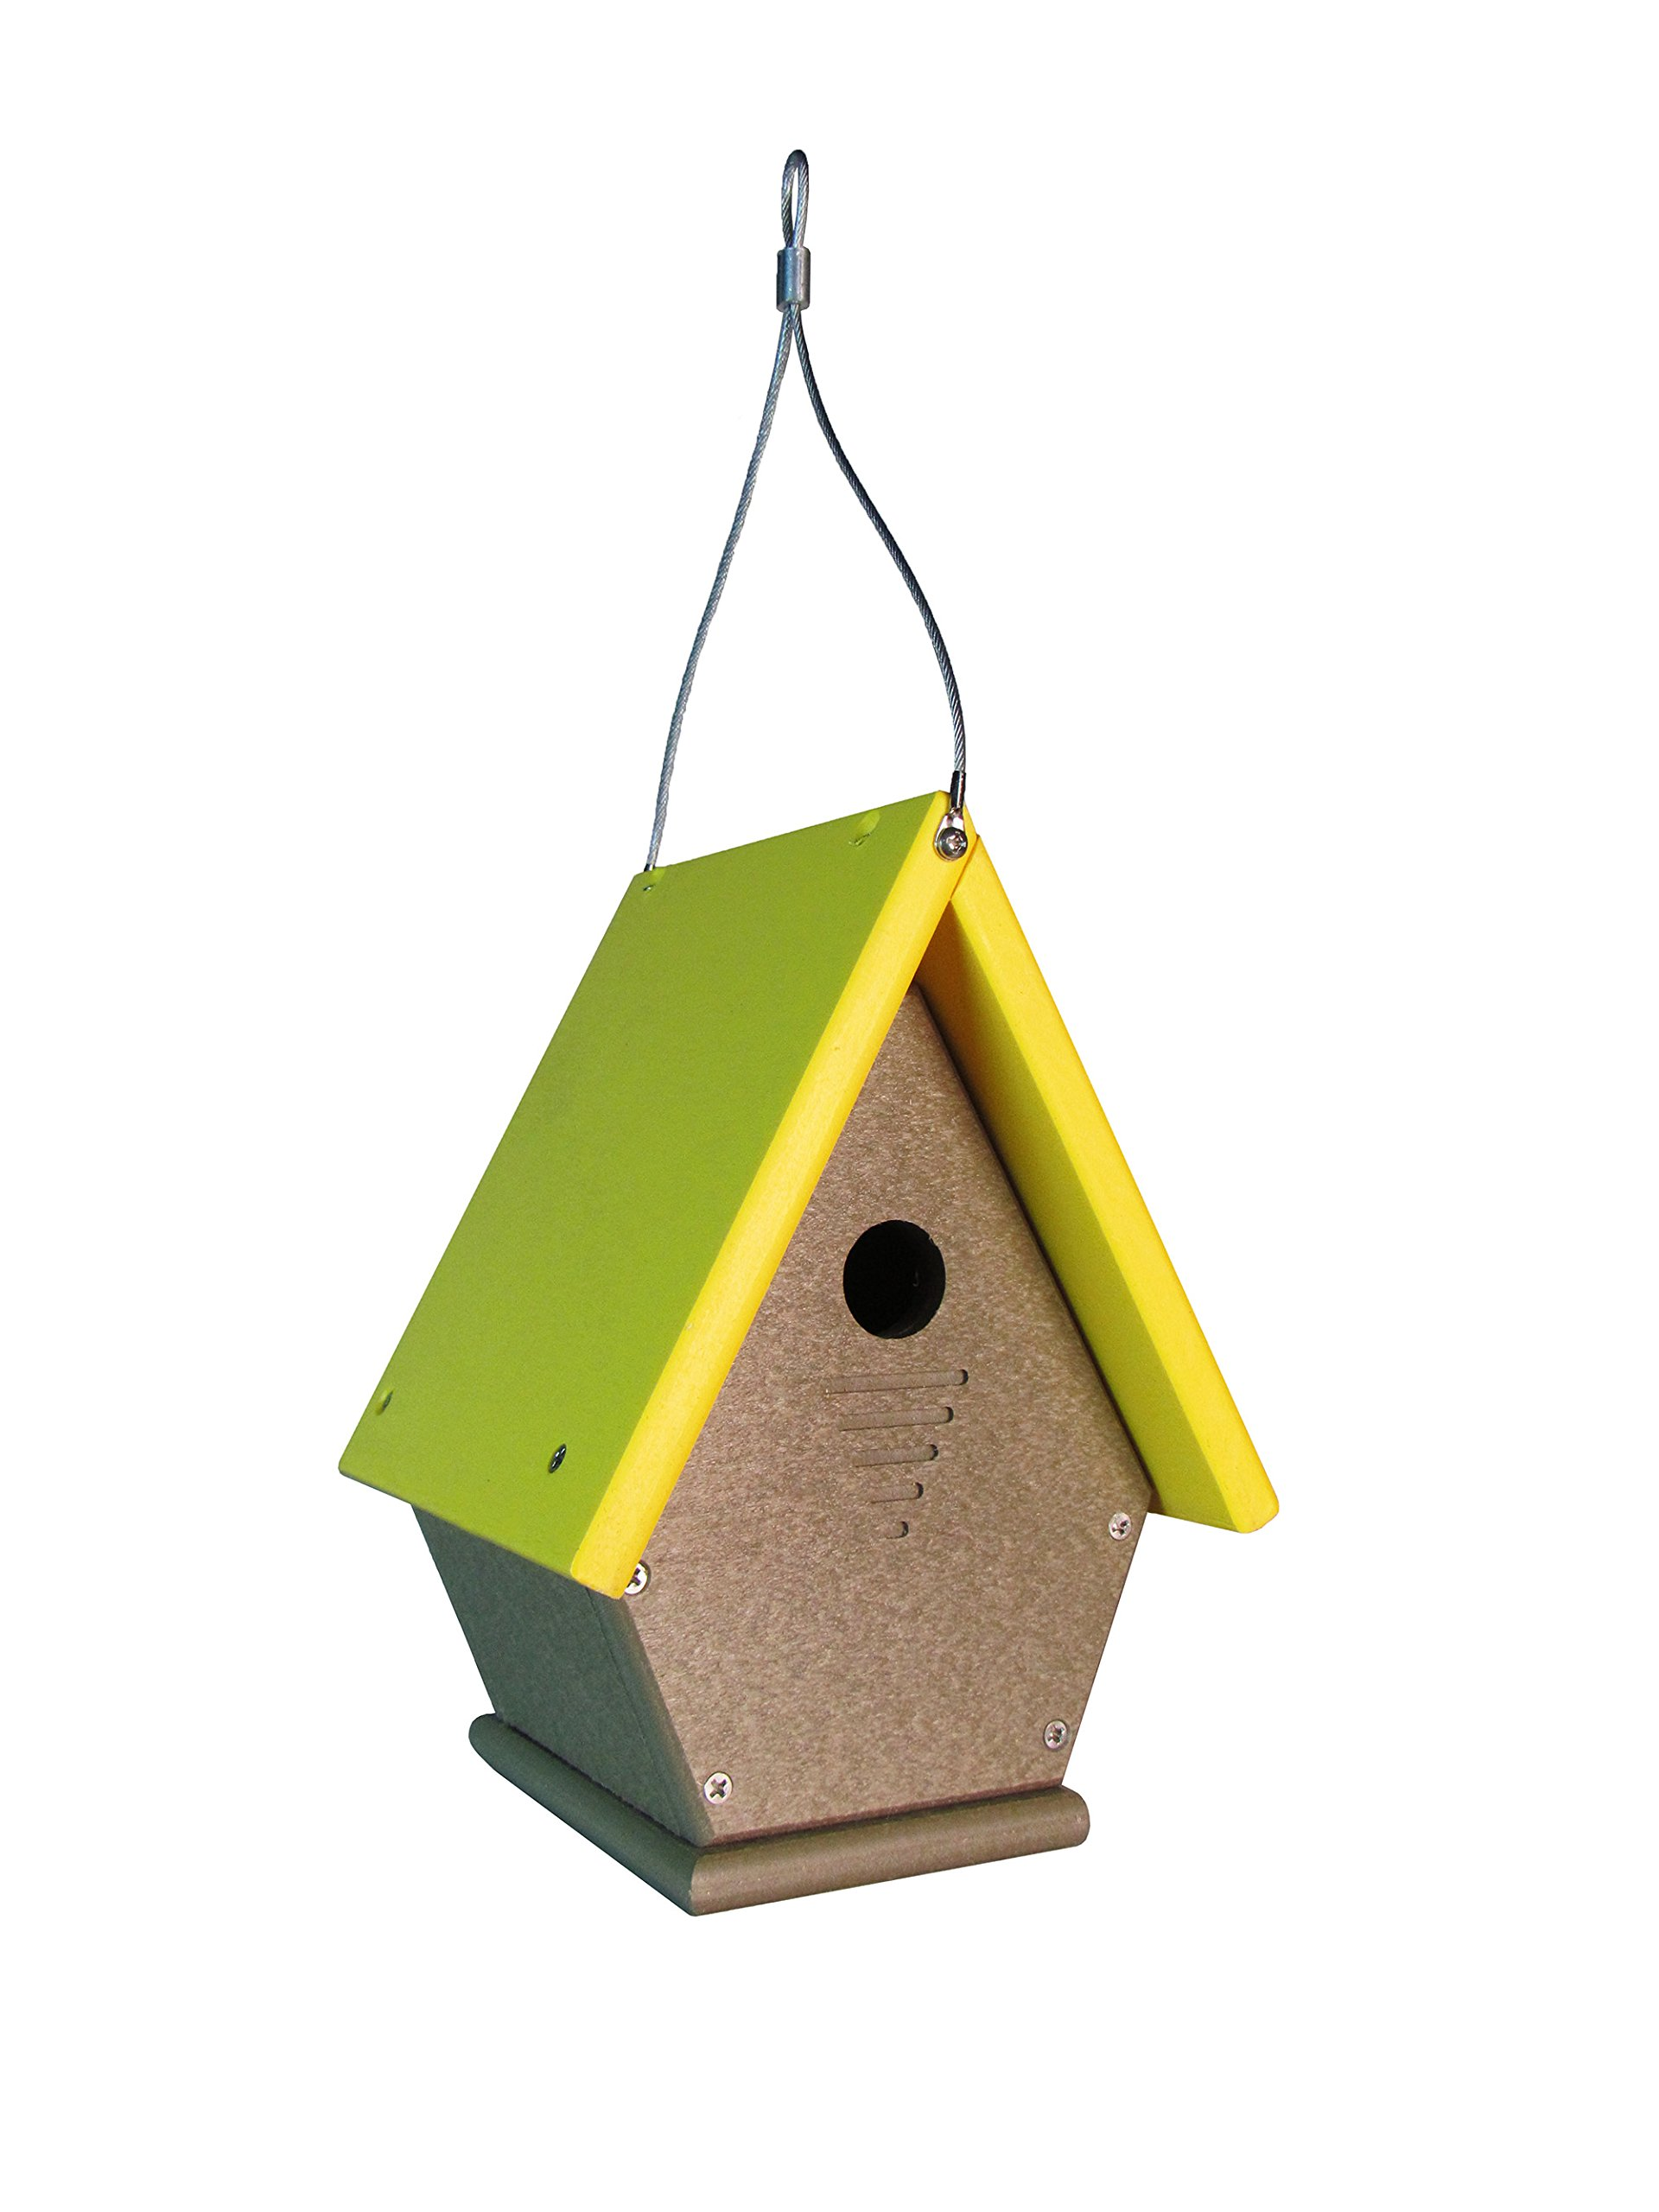 JCs Wildlife Wren, Chickadee, and Warbler Chateau Bird House All Poly Light Brown/Yellow